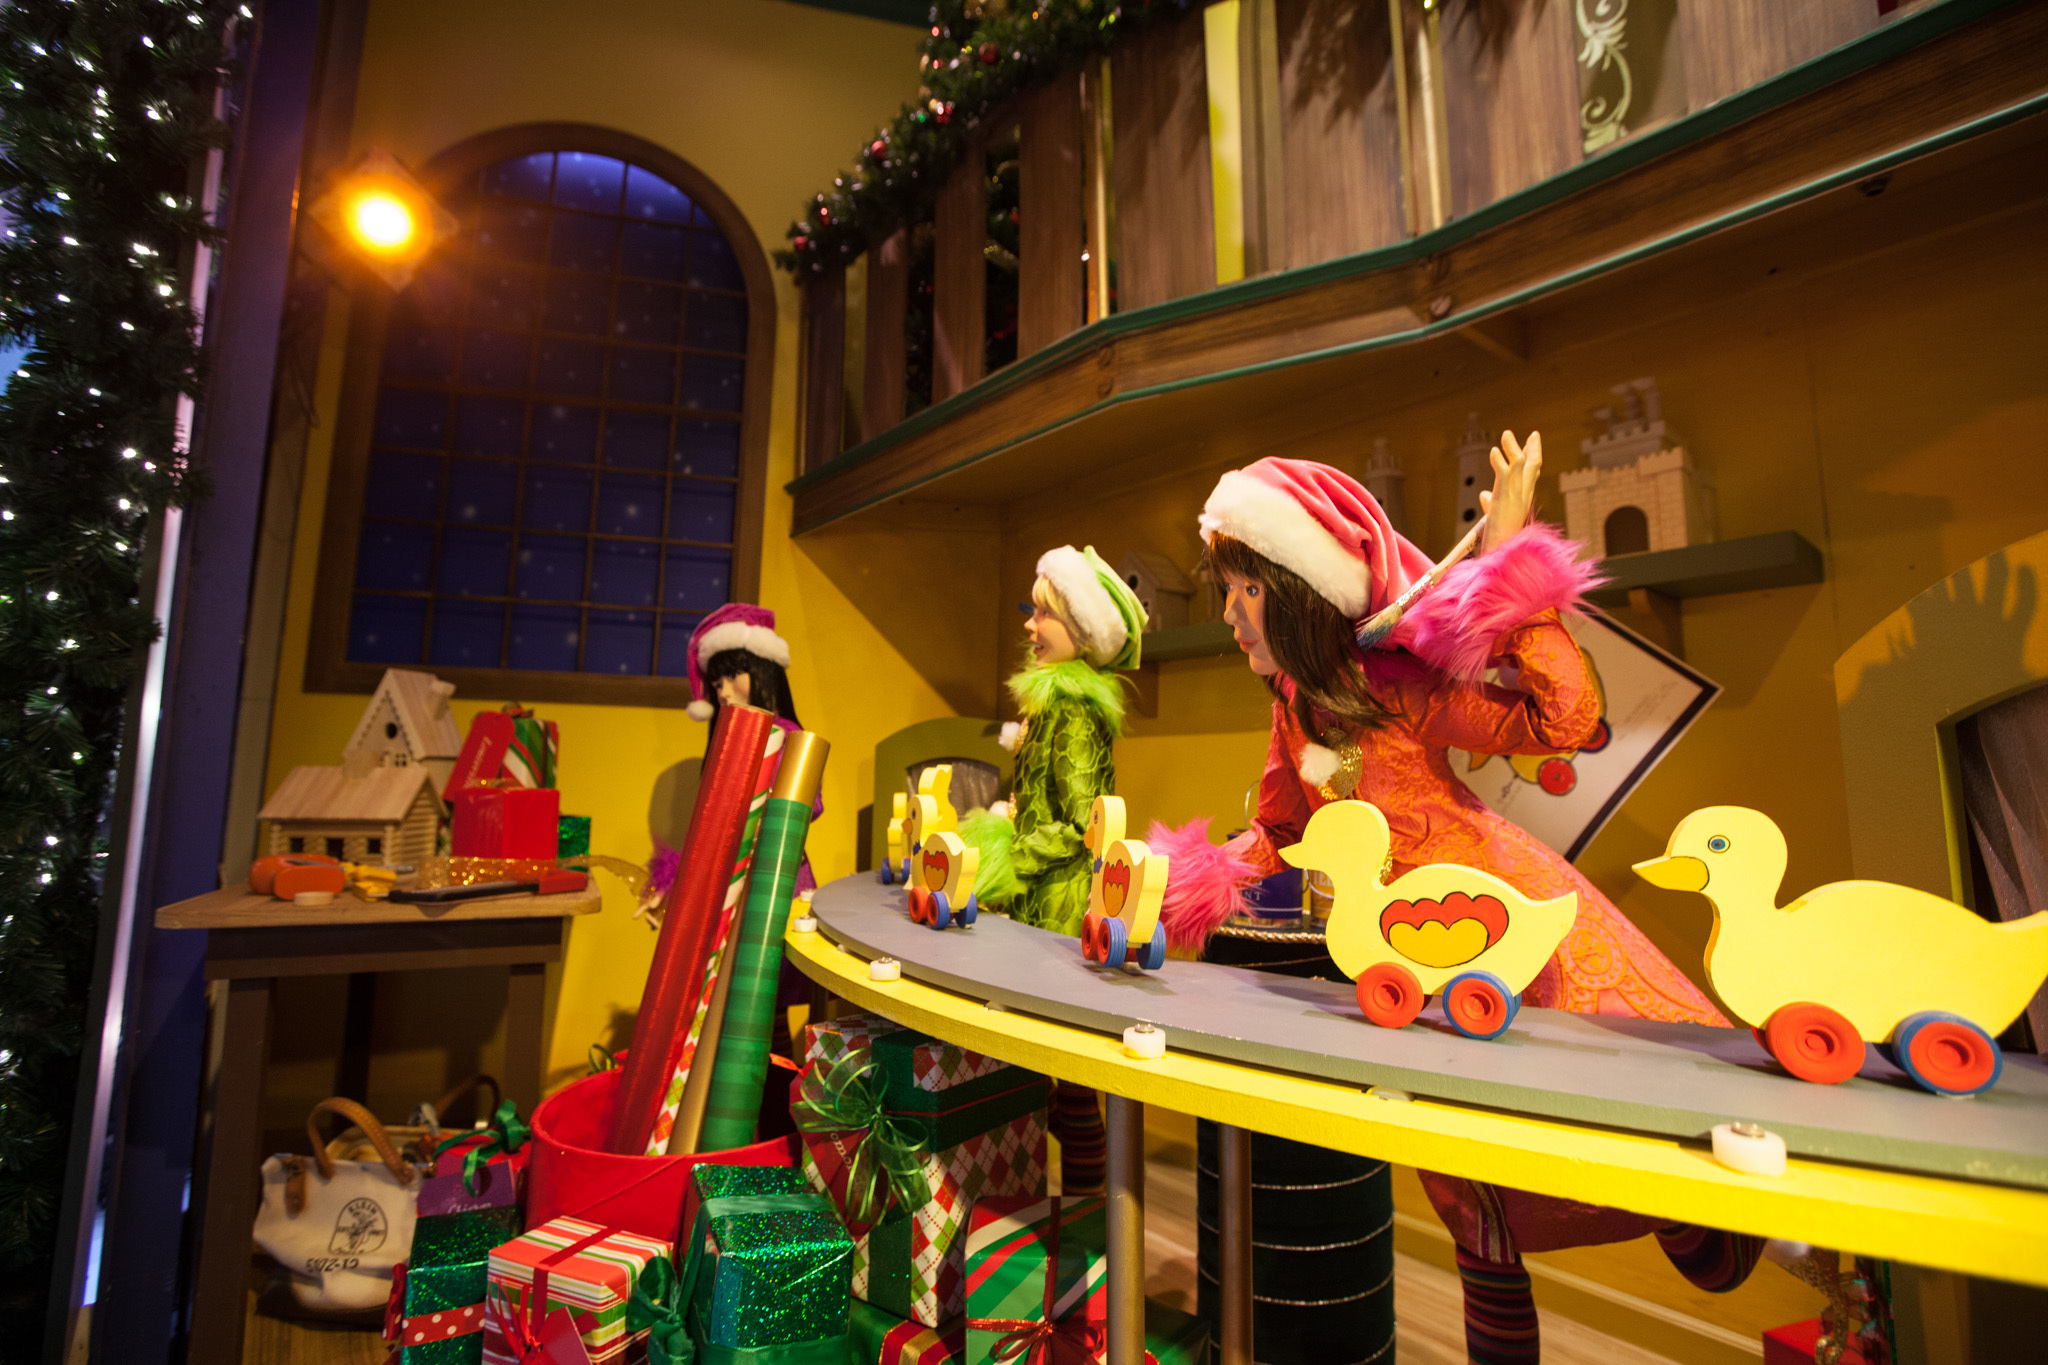 Sneak peek at Macy's 2014 holiday windows